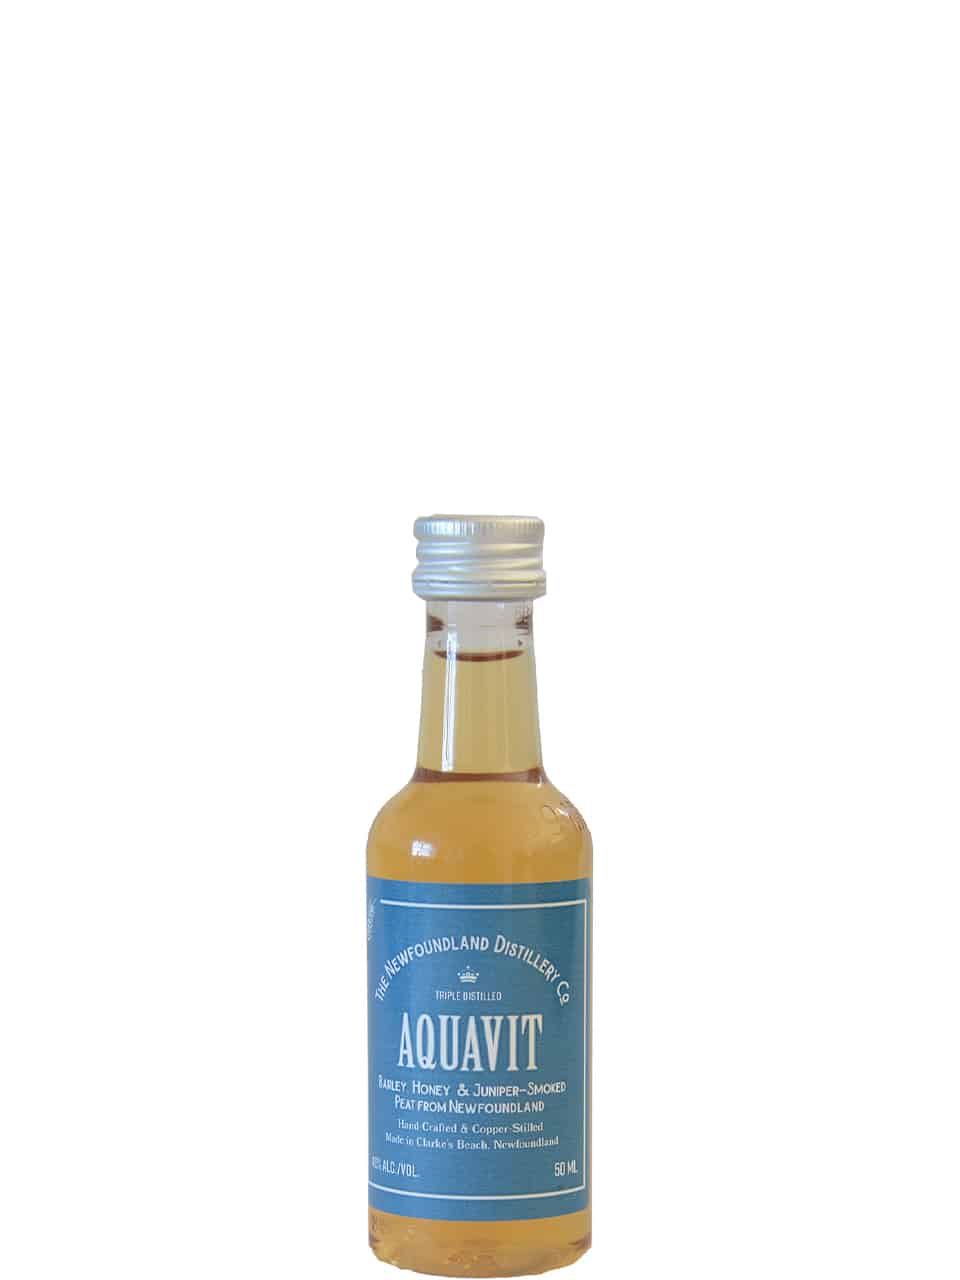 The Newfoundland Distillery Co. Aquavit